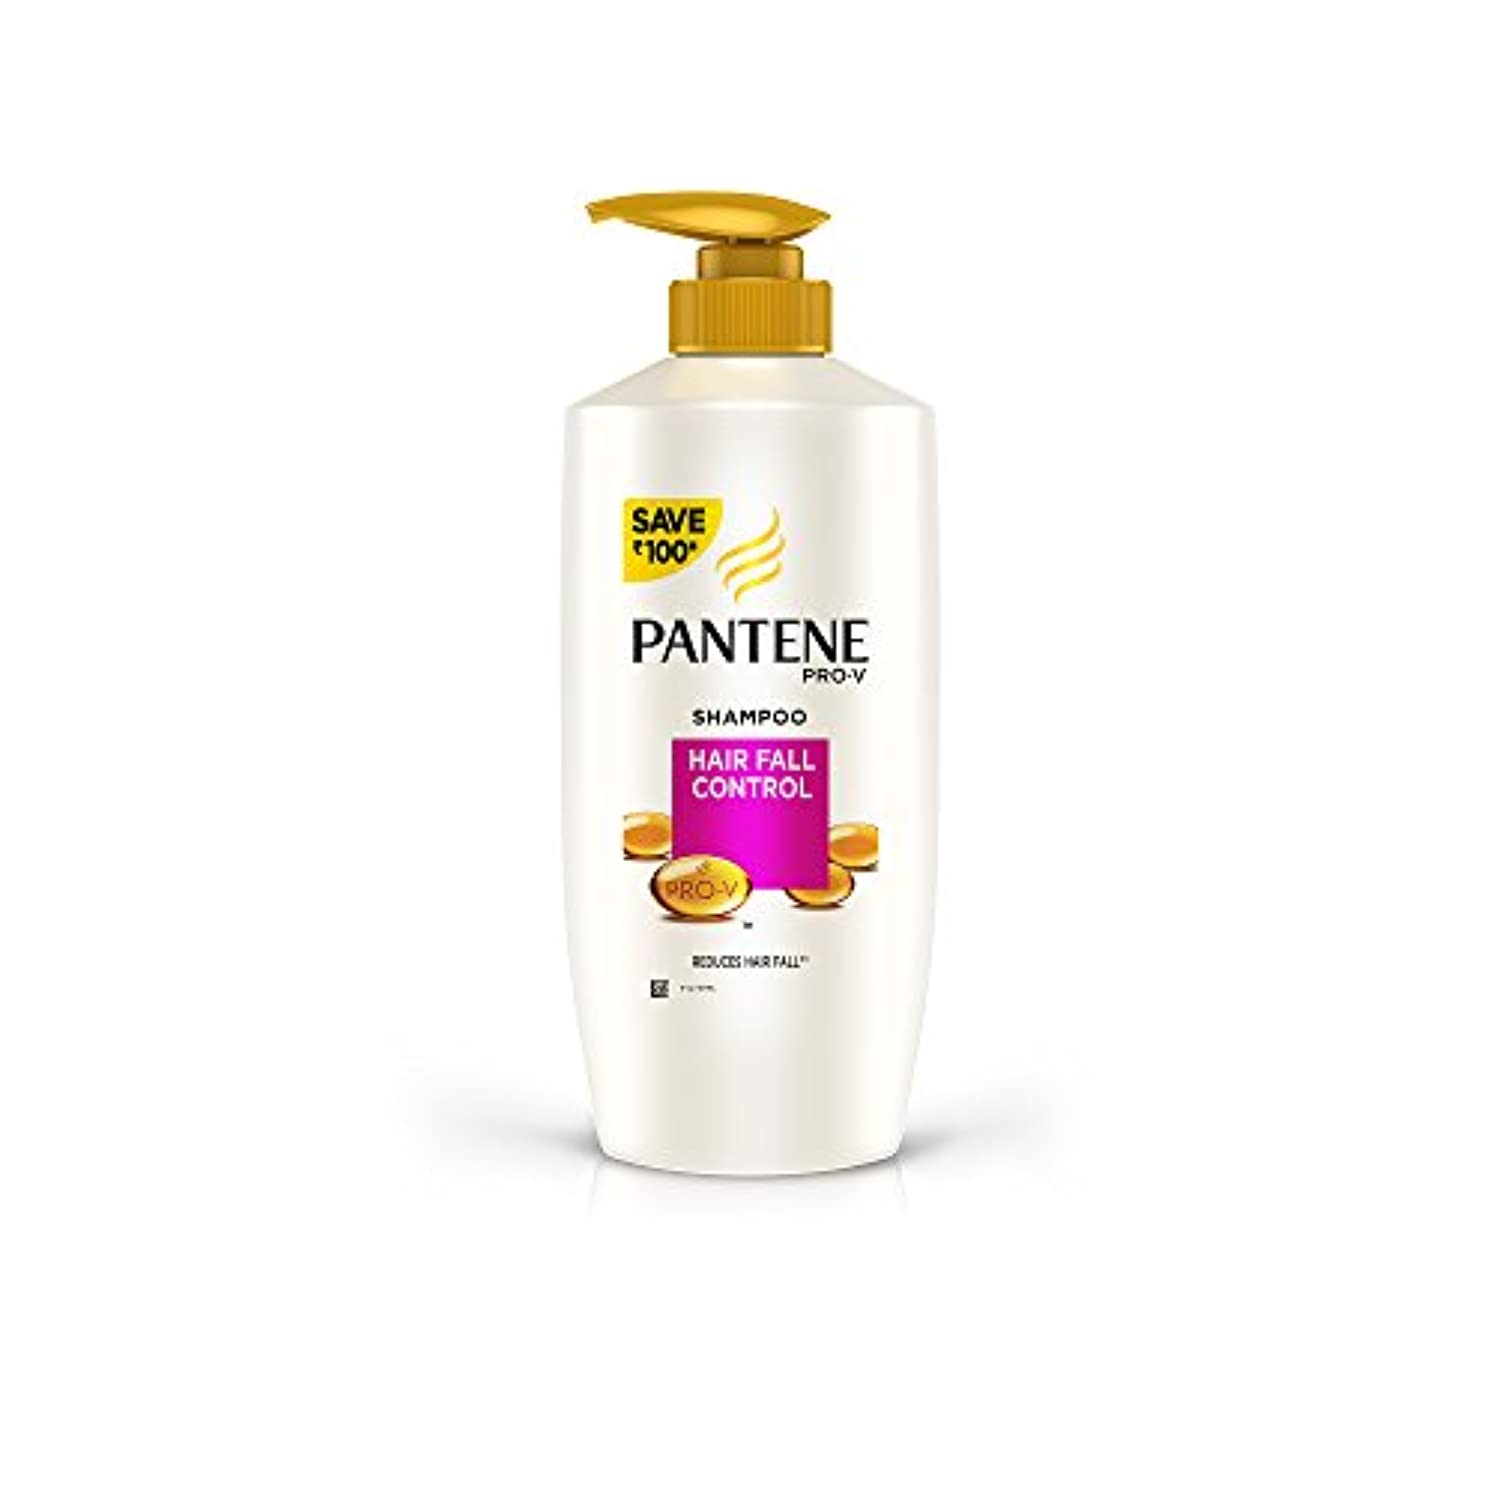 PANTENE Hair Fall control SHAMPOO 675 ml (PANTENEヘアフォールコントロールシャンプー675ml)